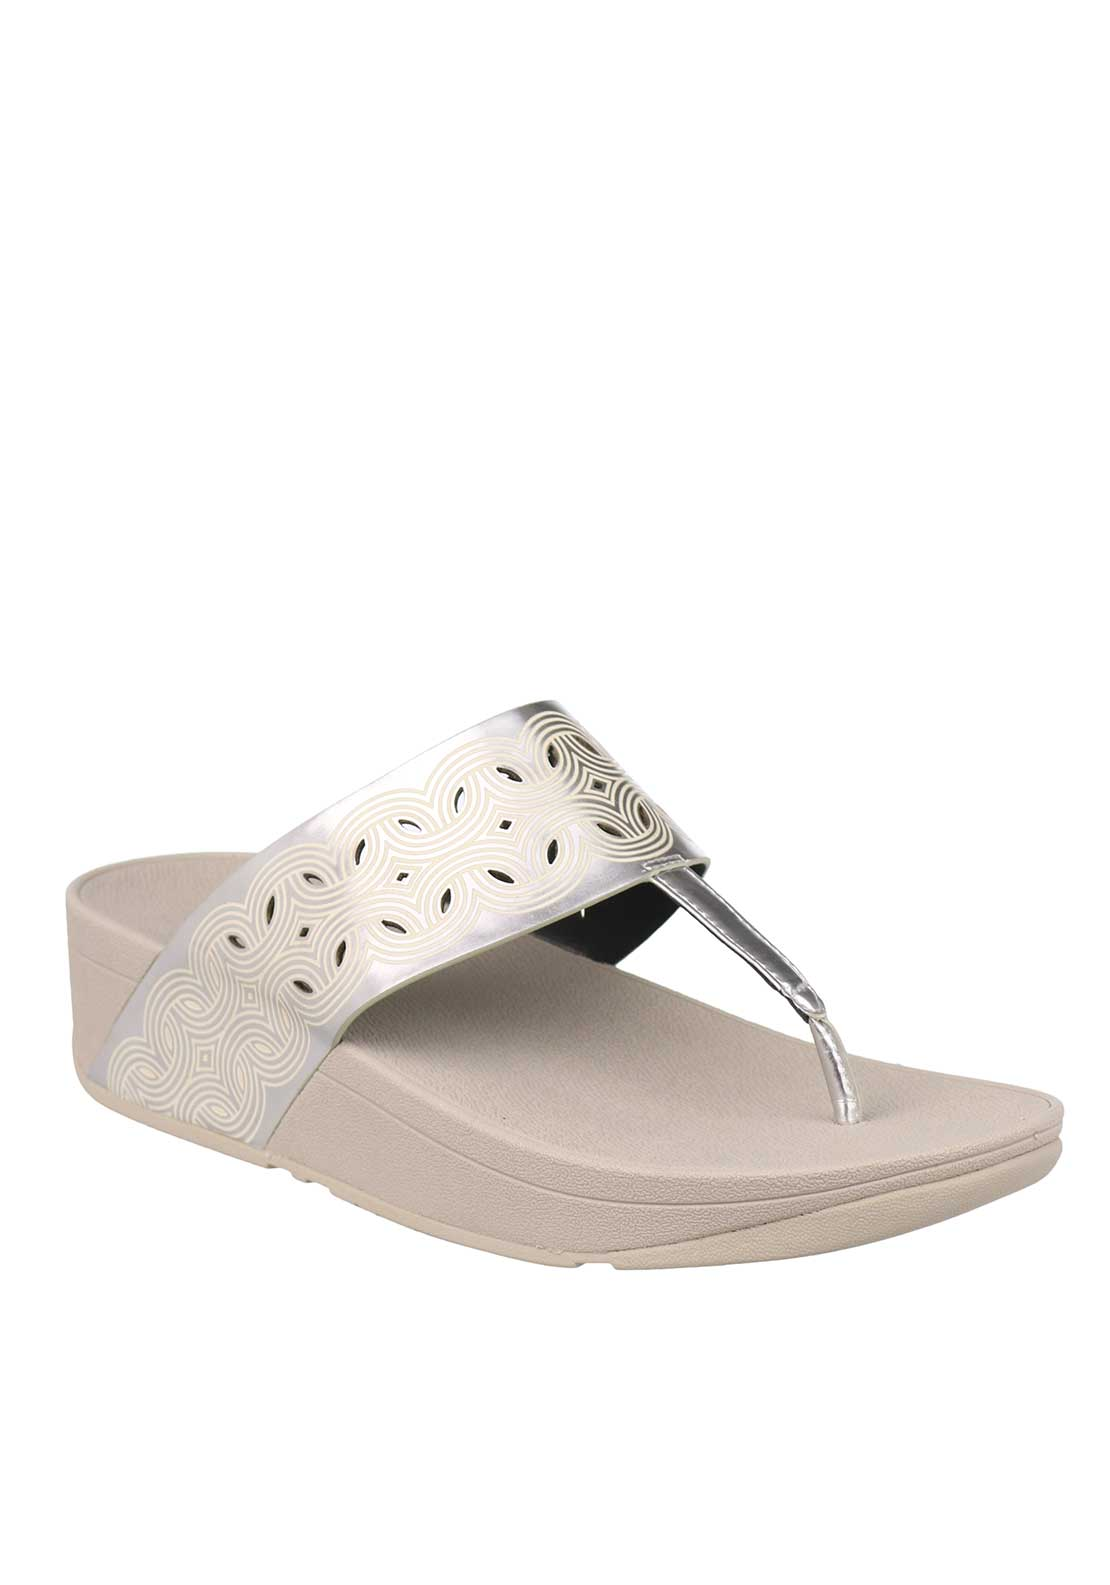 Fit Flop™ Bahia™ IMI Leather Toe Thong Sandals, Silver